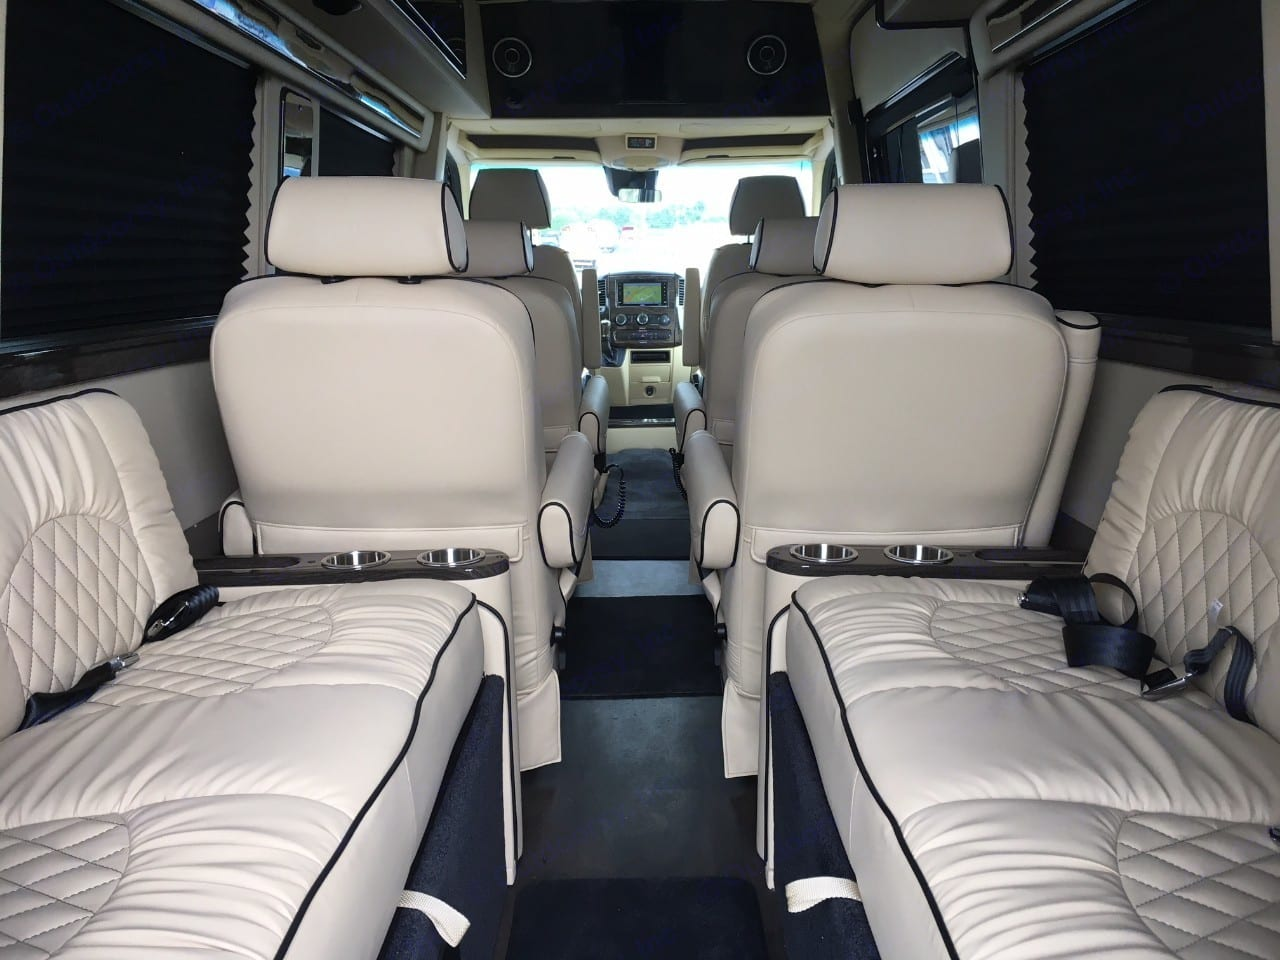 Plush sofas with seatbelts for 4 that convert into a bed. American Coach Patriot Cruiser 2019